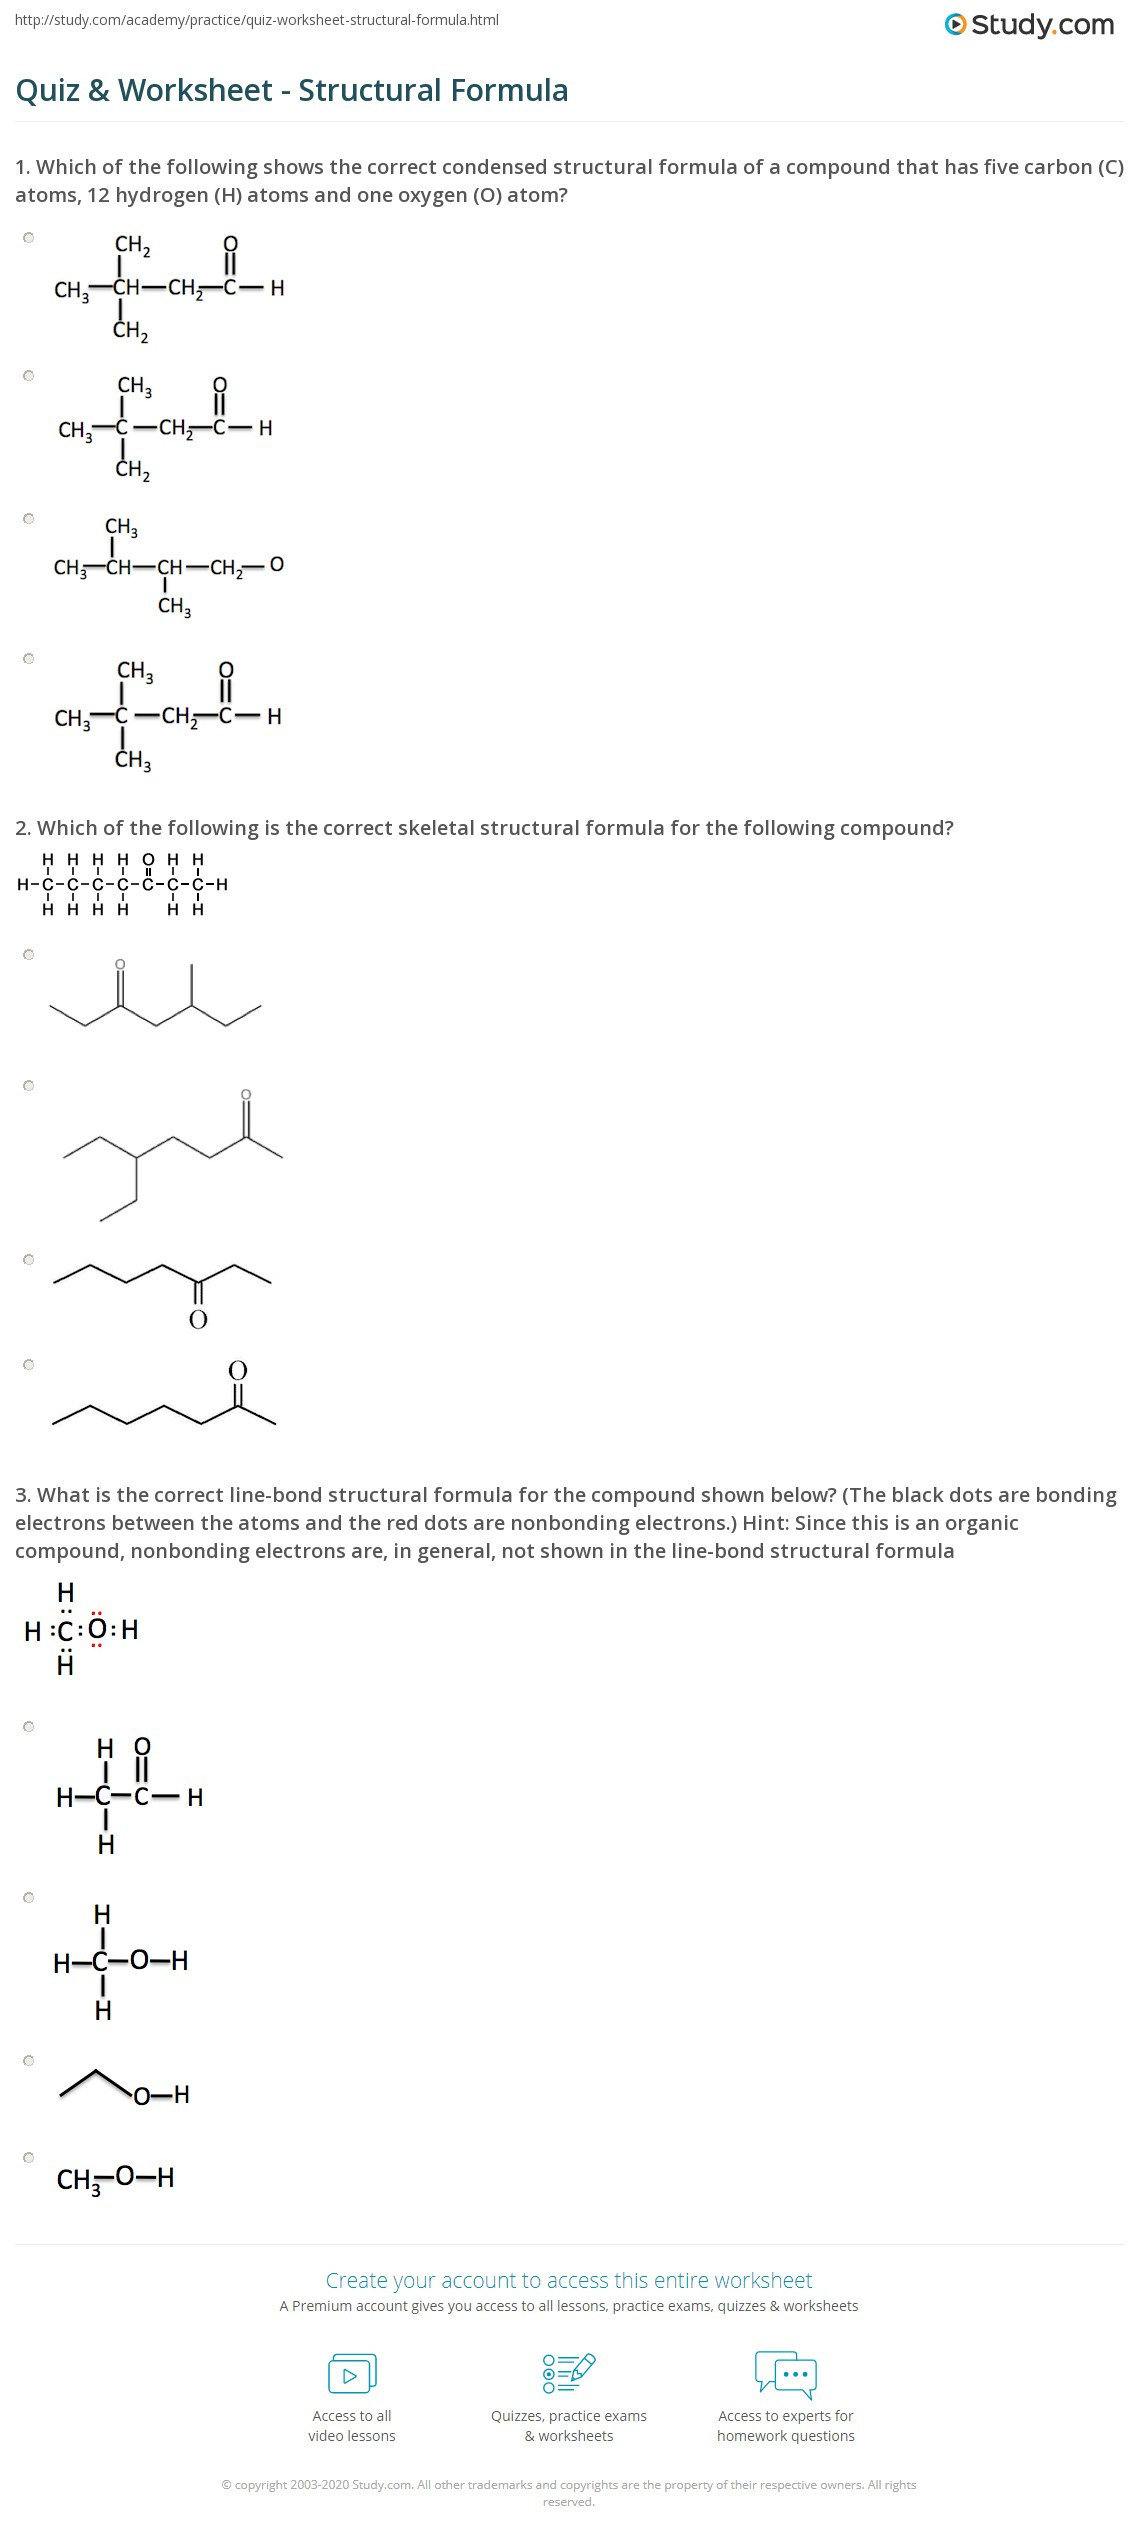 30 Worksheet For Basic Stoichiometry Answer